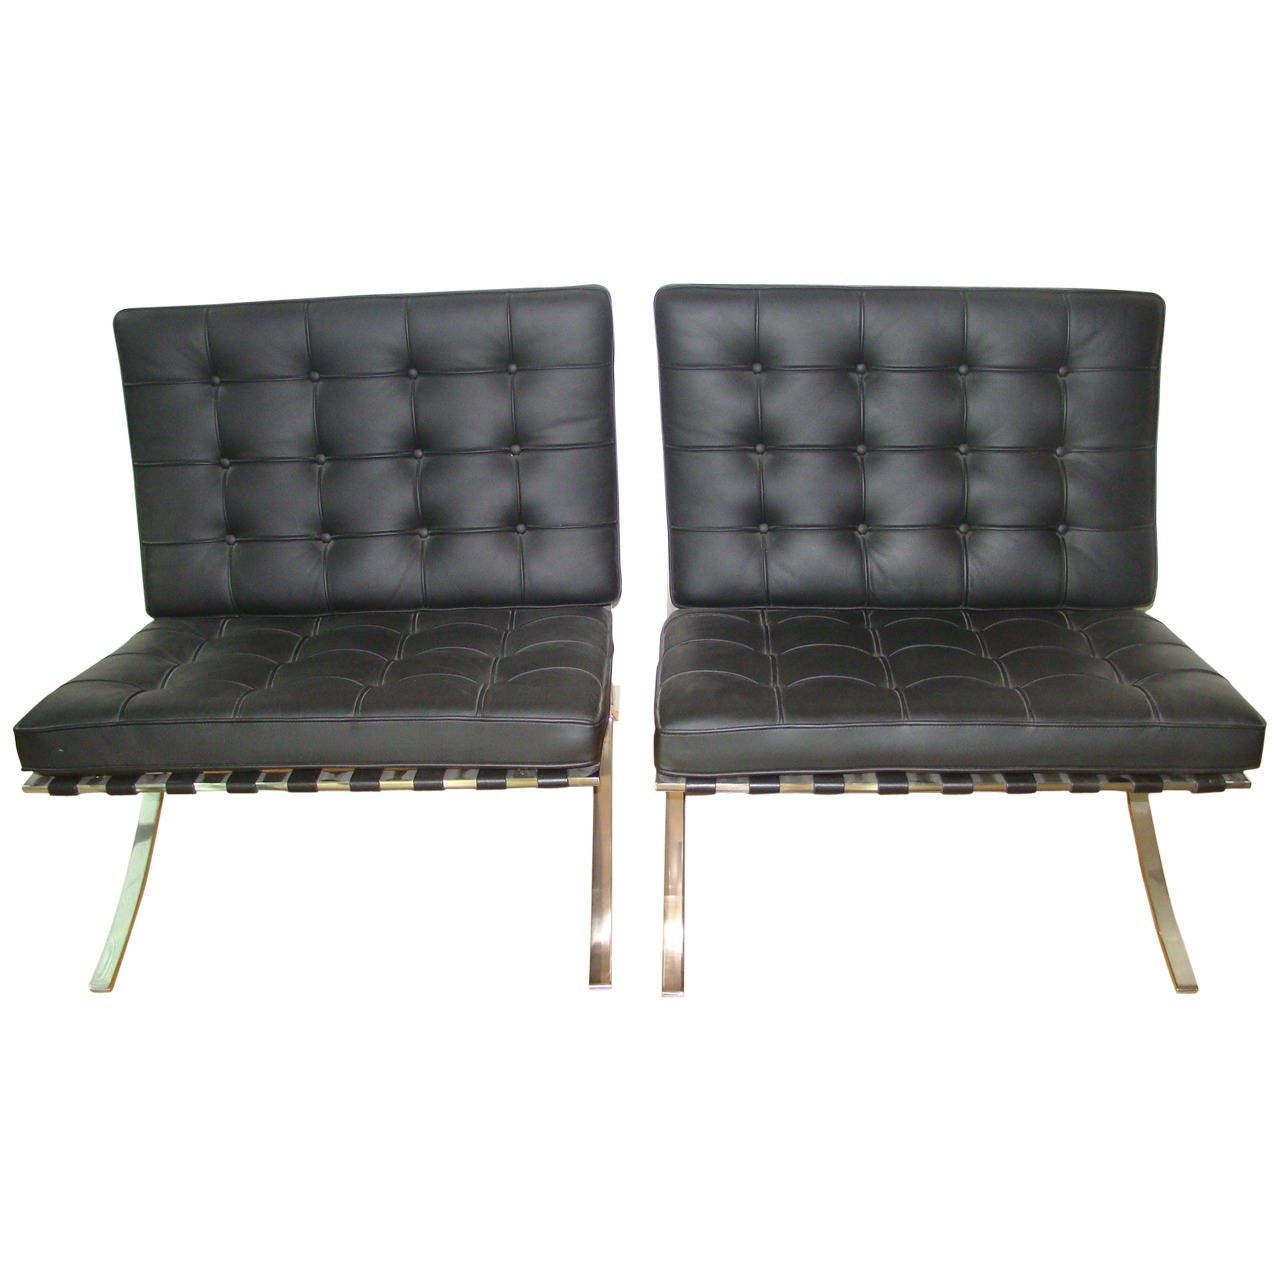 knoll signed mies van der rohe black leather barcelona chairs pair at 1stdibs. Black Bedroom Furniture Sets. Home Design Ideas